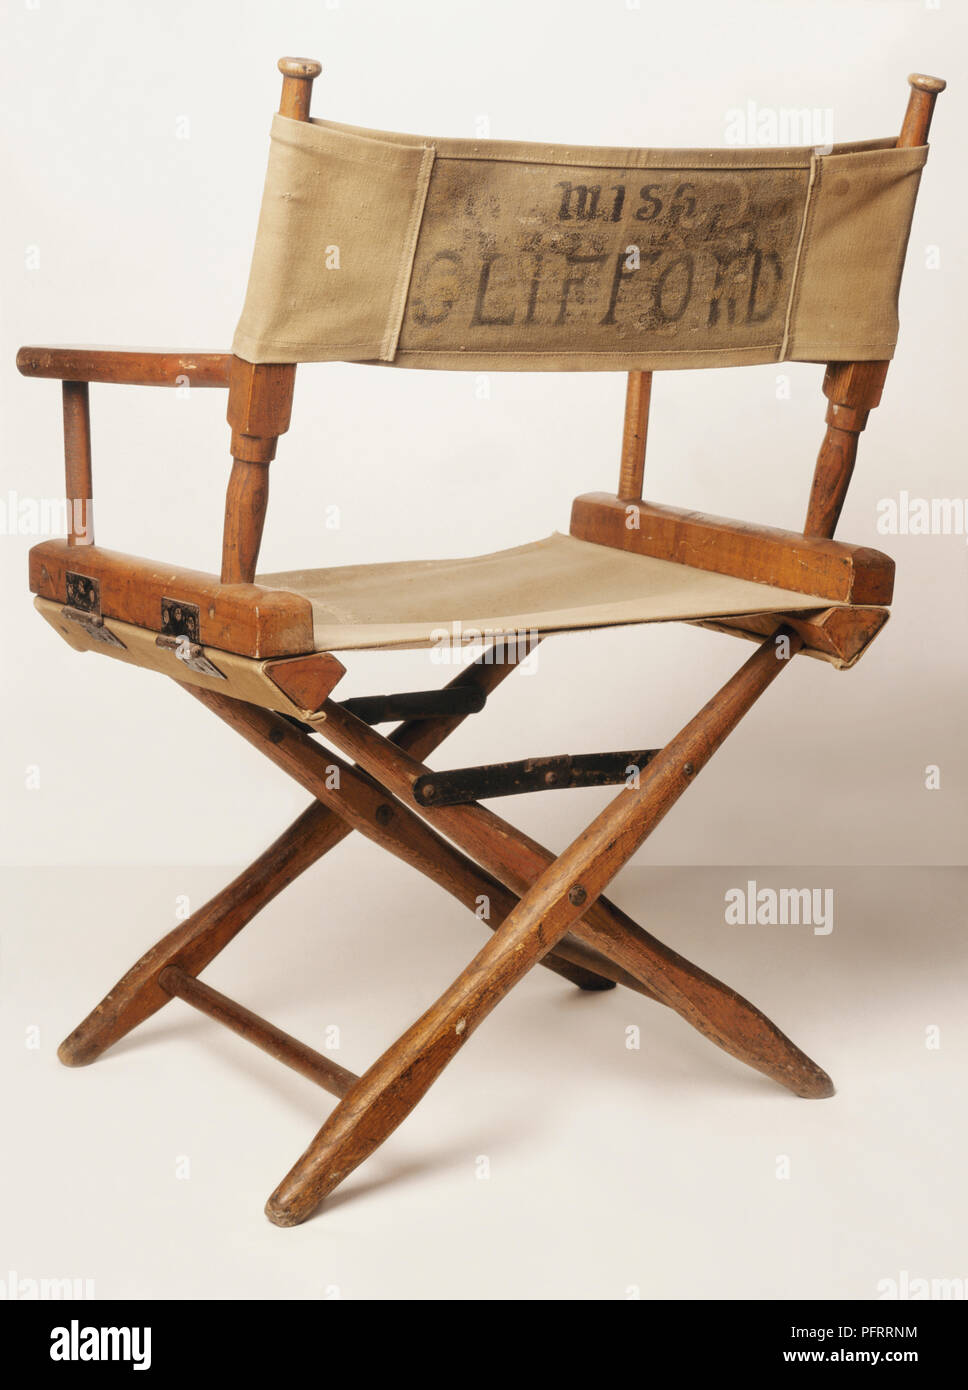 Sensational Wood And Canvas Directors Folding Chair Stock Photo Squirreltailoven Fun Painted Chair Ideas Images Squirreltailovenorg